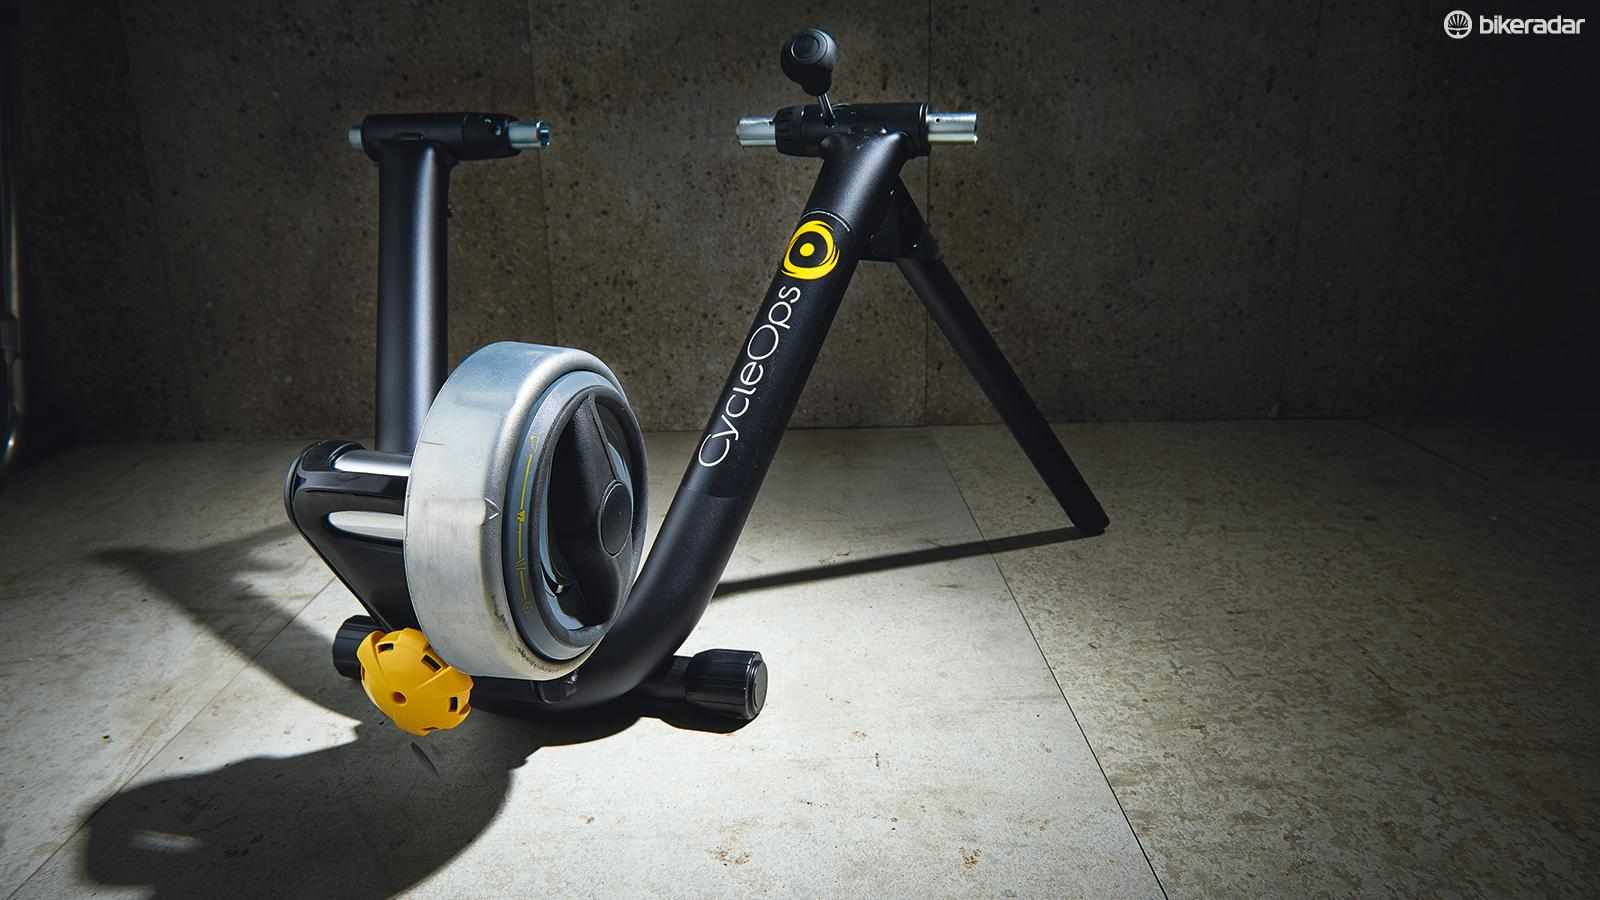 The CycleOps Classic SuperMagneto is a fairly inexpensive and very decent trainer